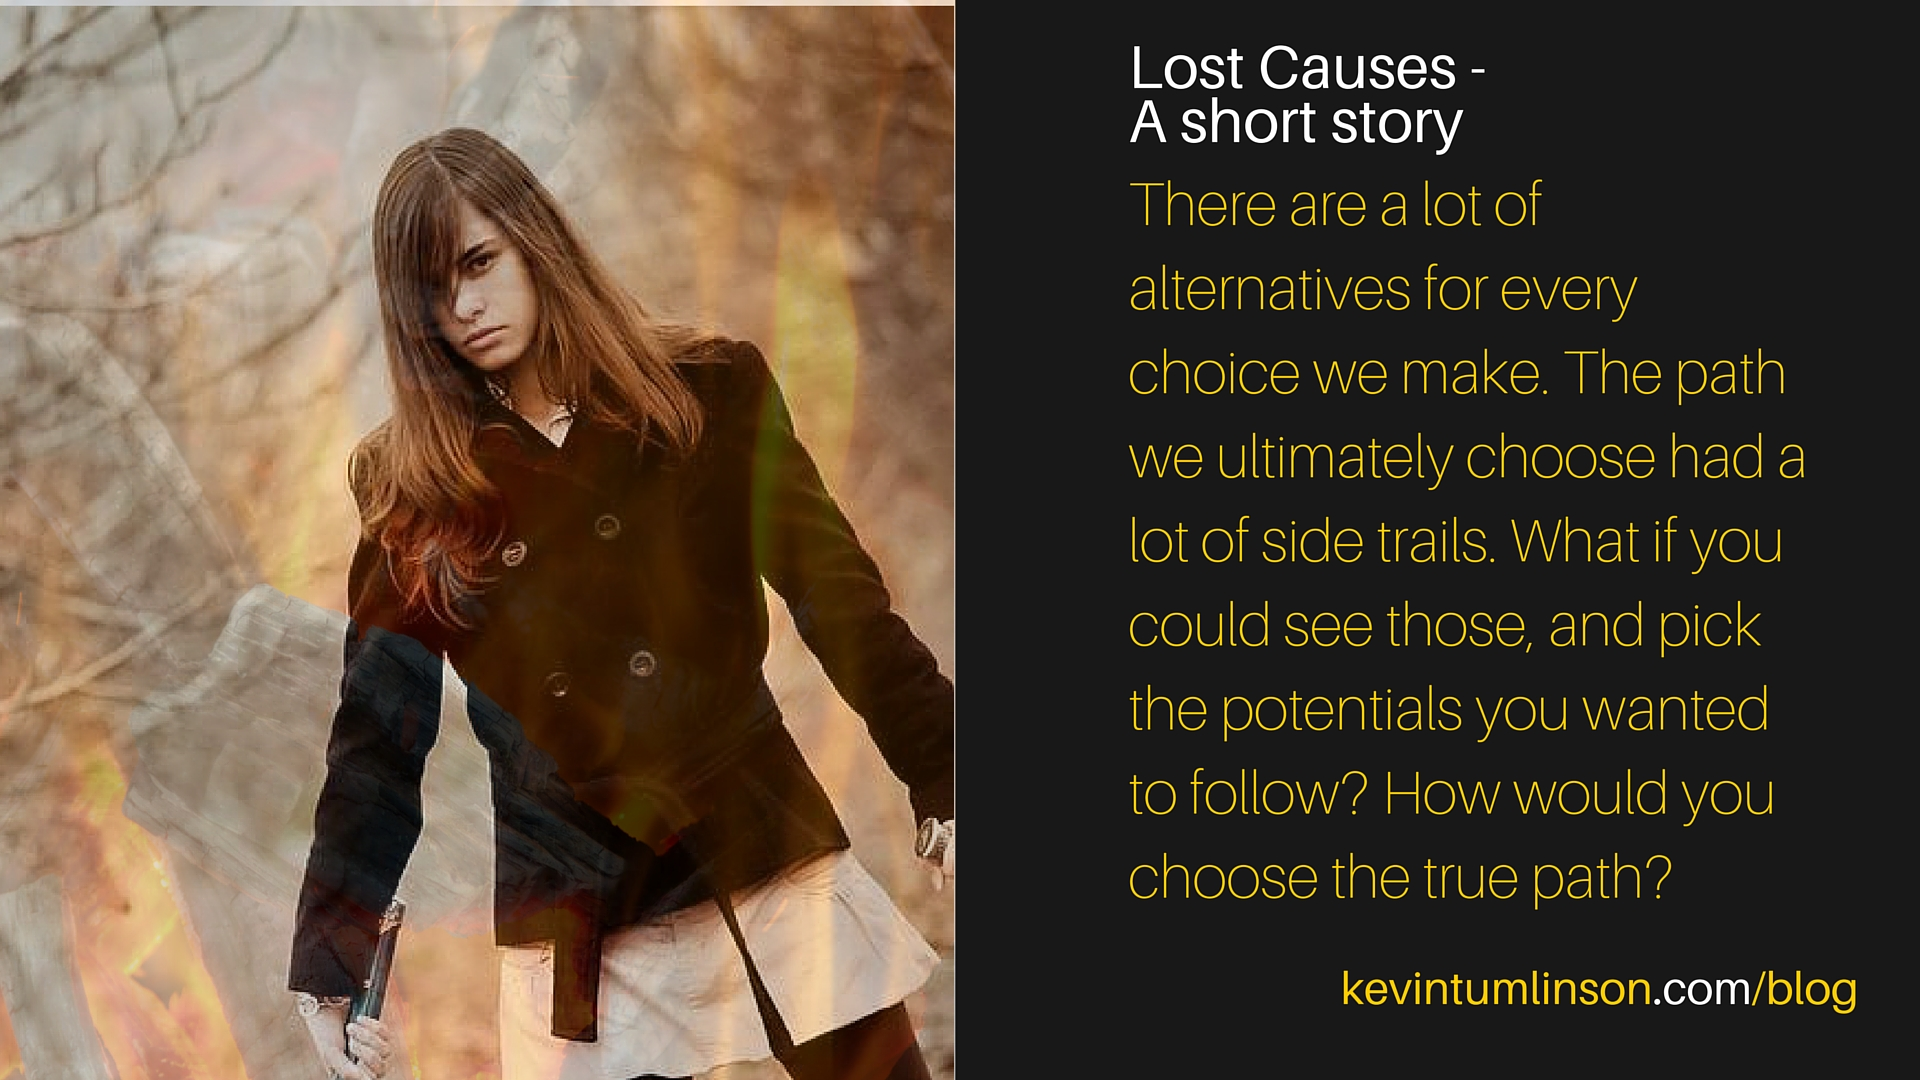 lost-causes-short-story